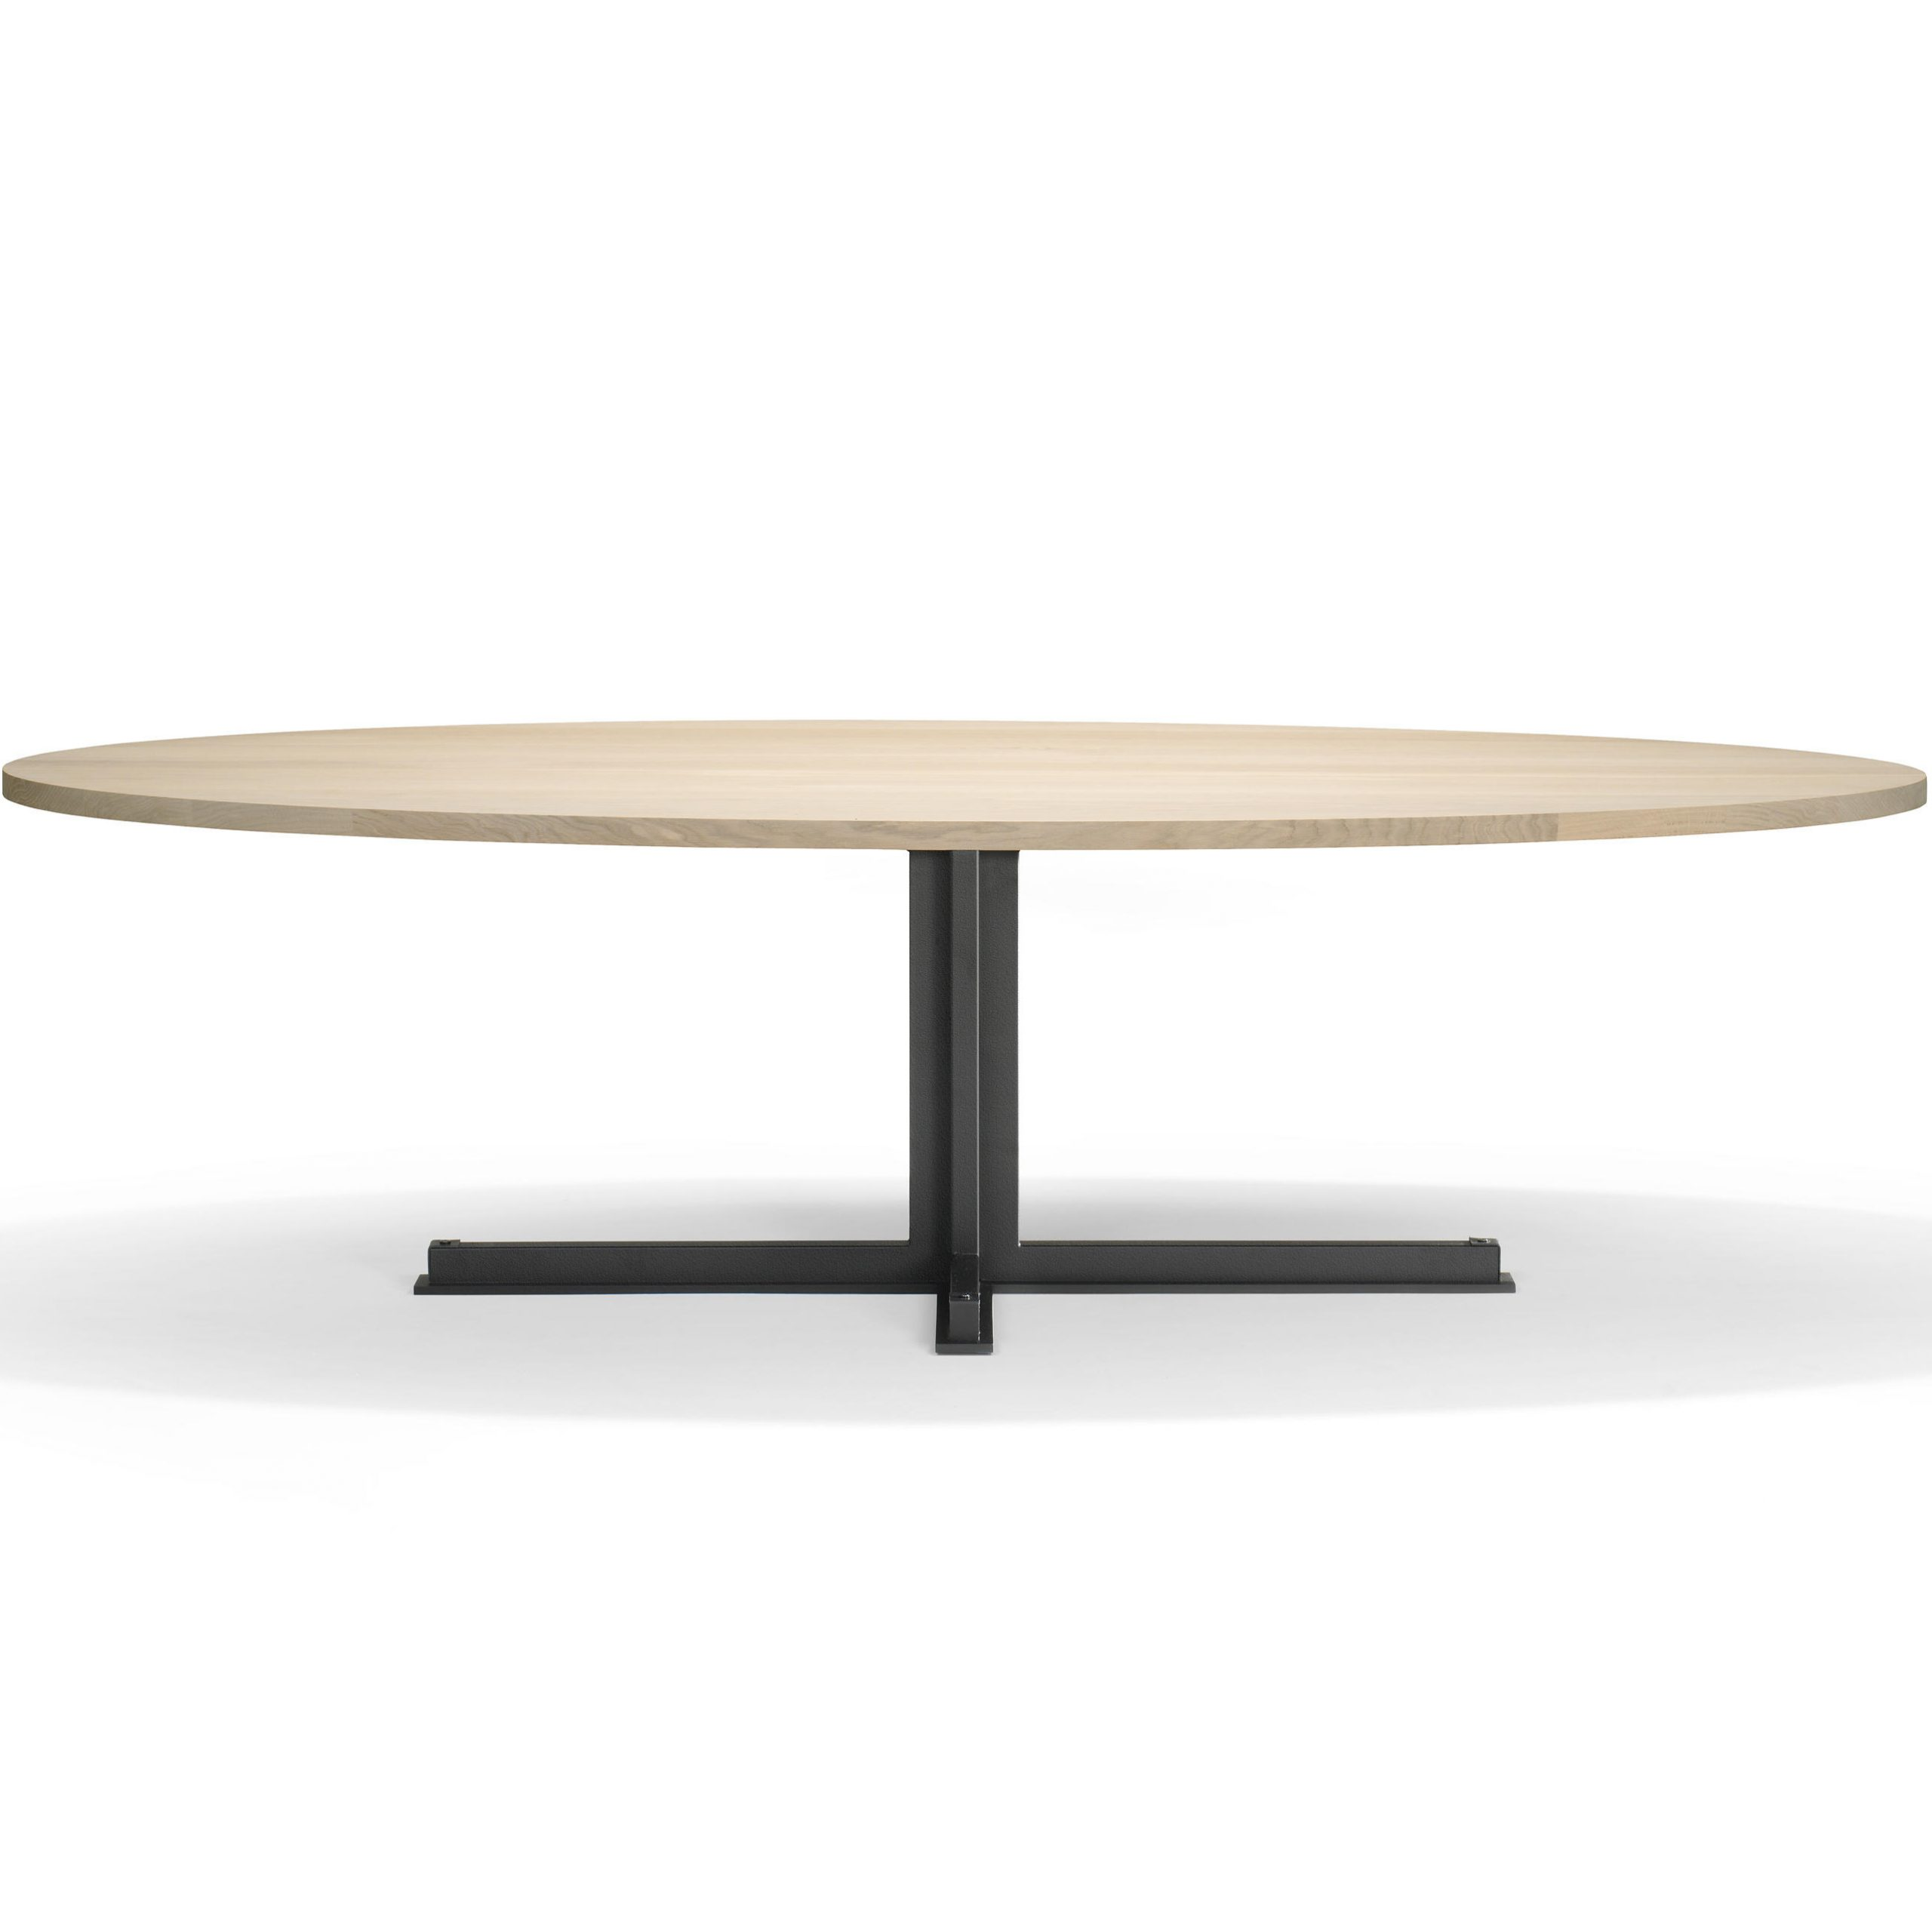 2019 Cross Oval Dining Table